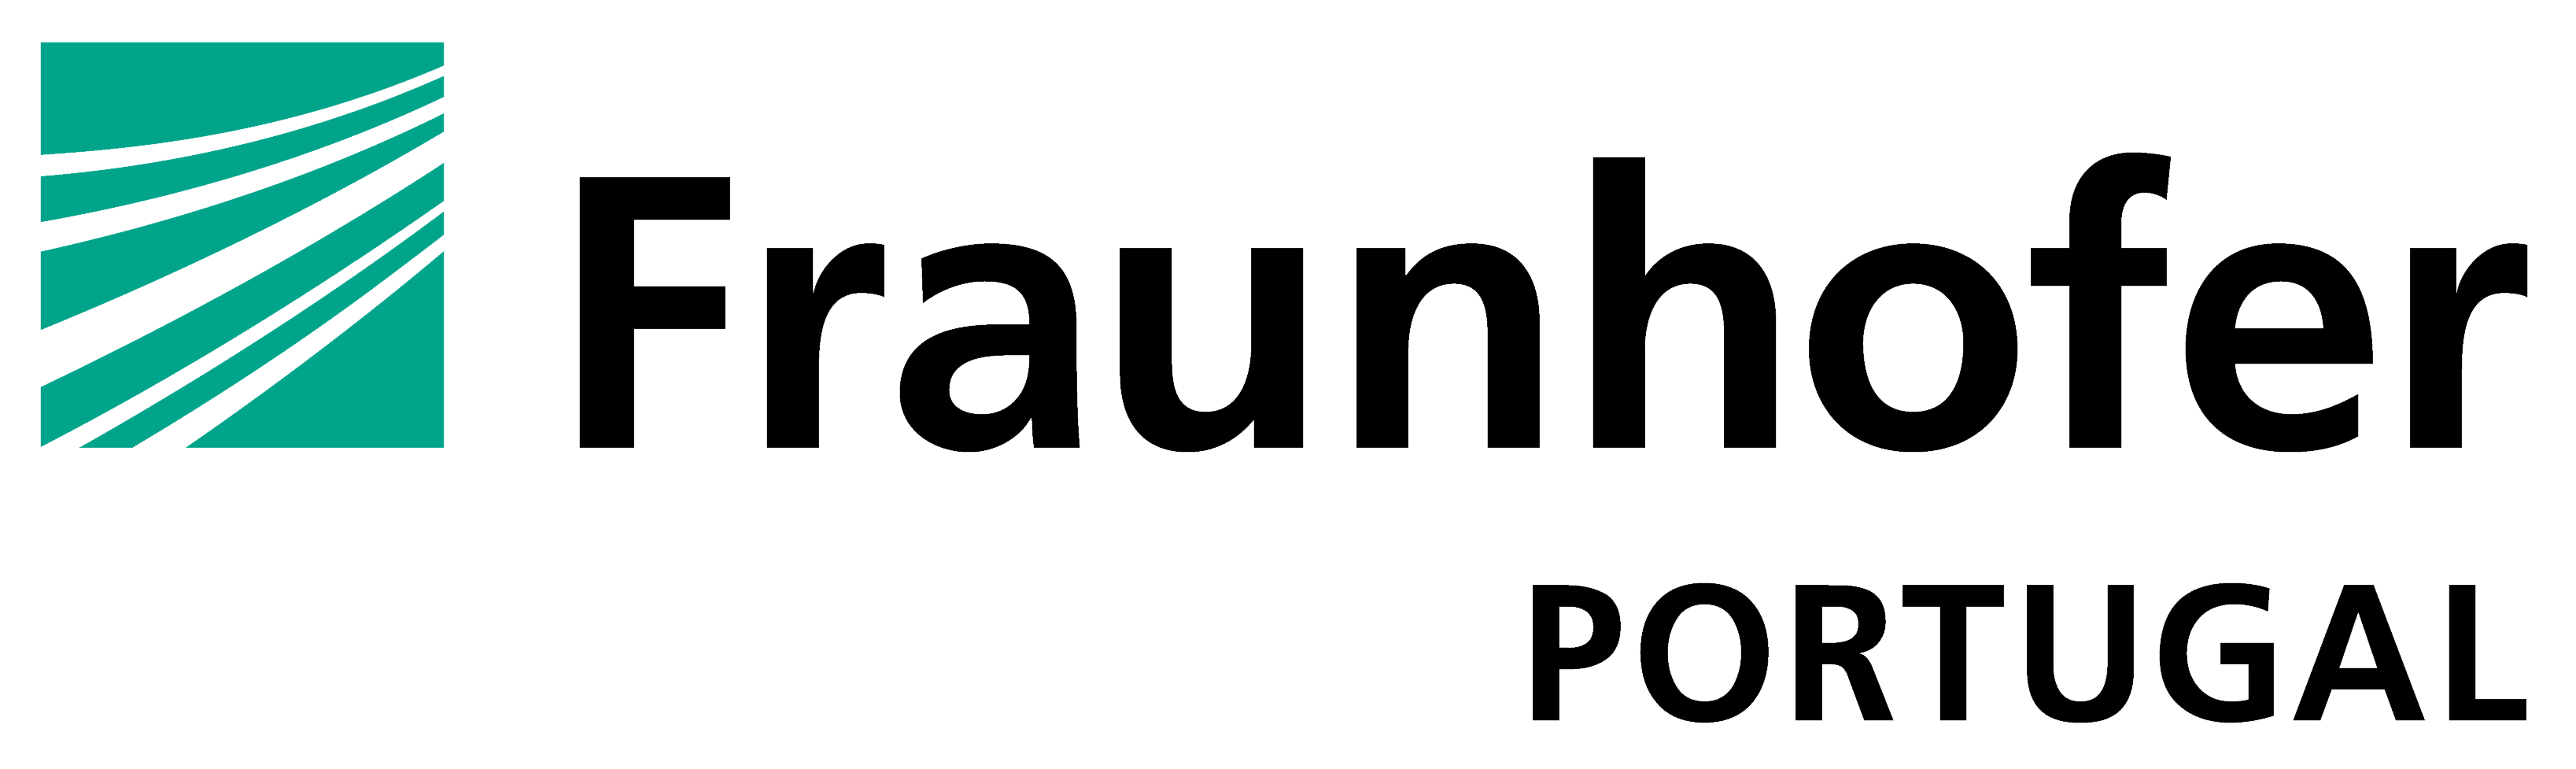 logotipo da Fraunhofer Portugal